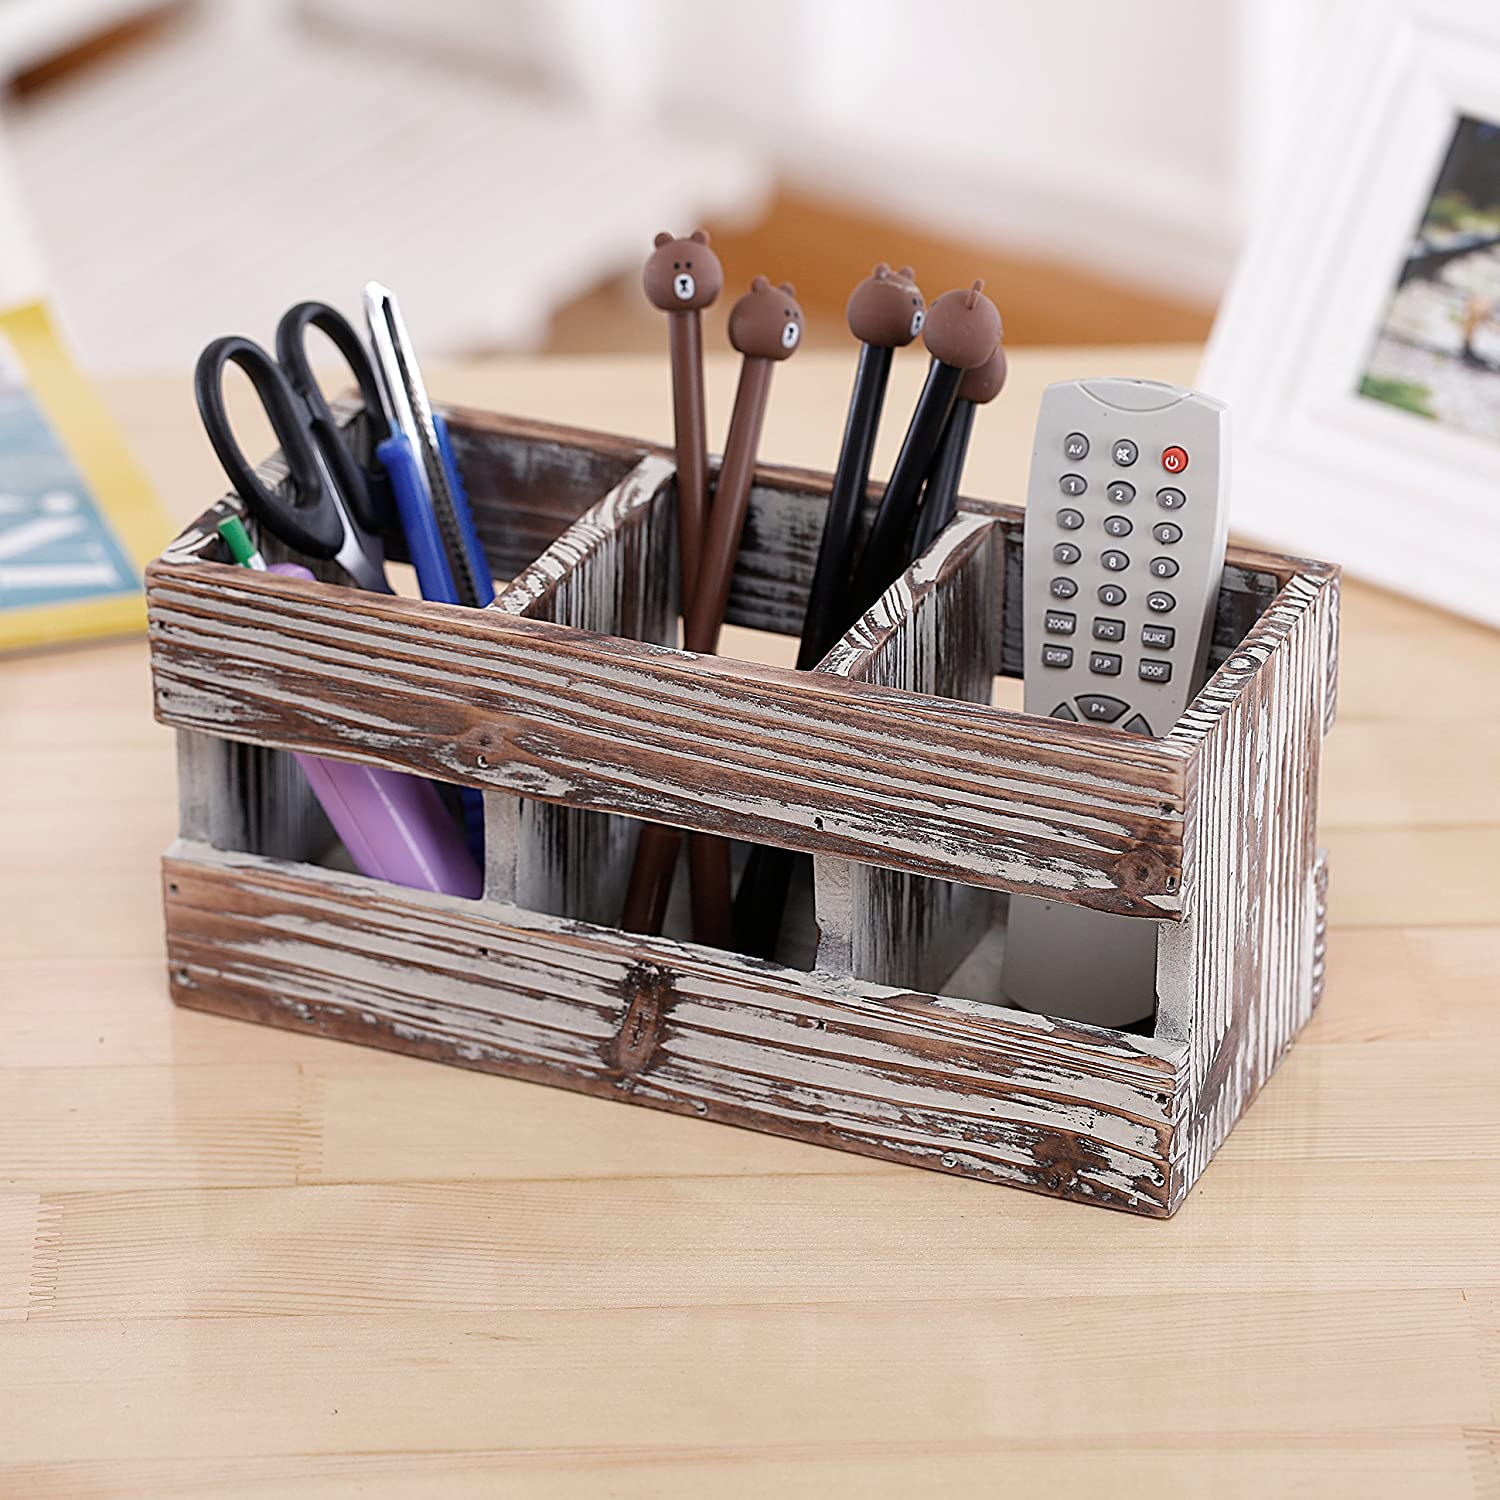 Compartment Torched Desktop Supplies Organizer Image 3